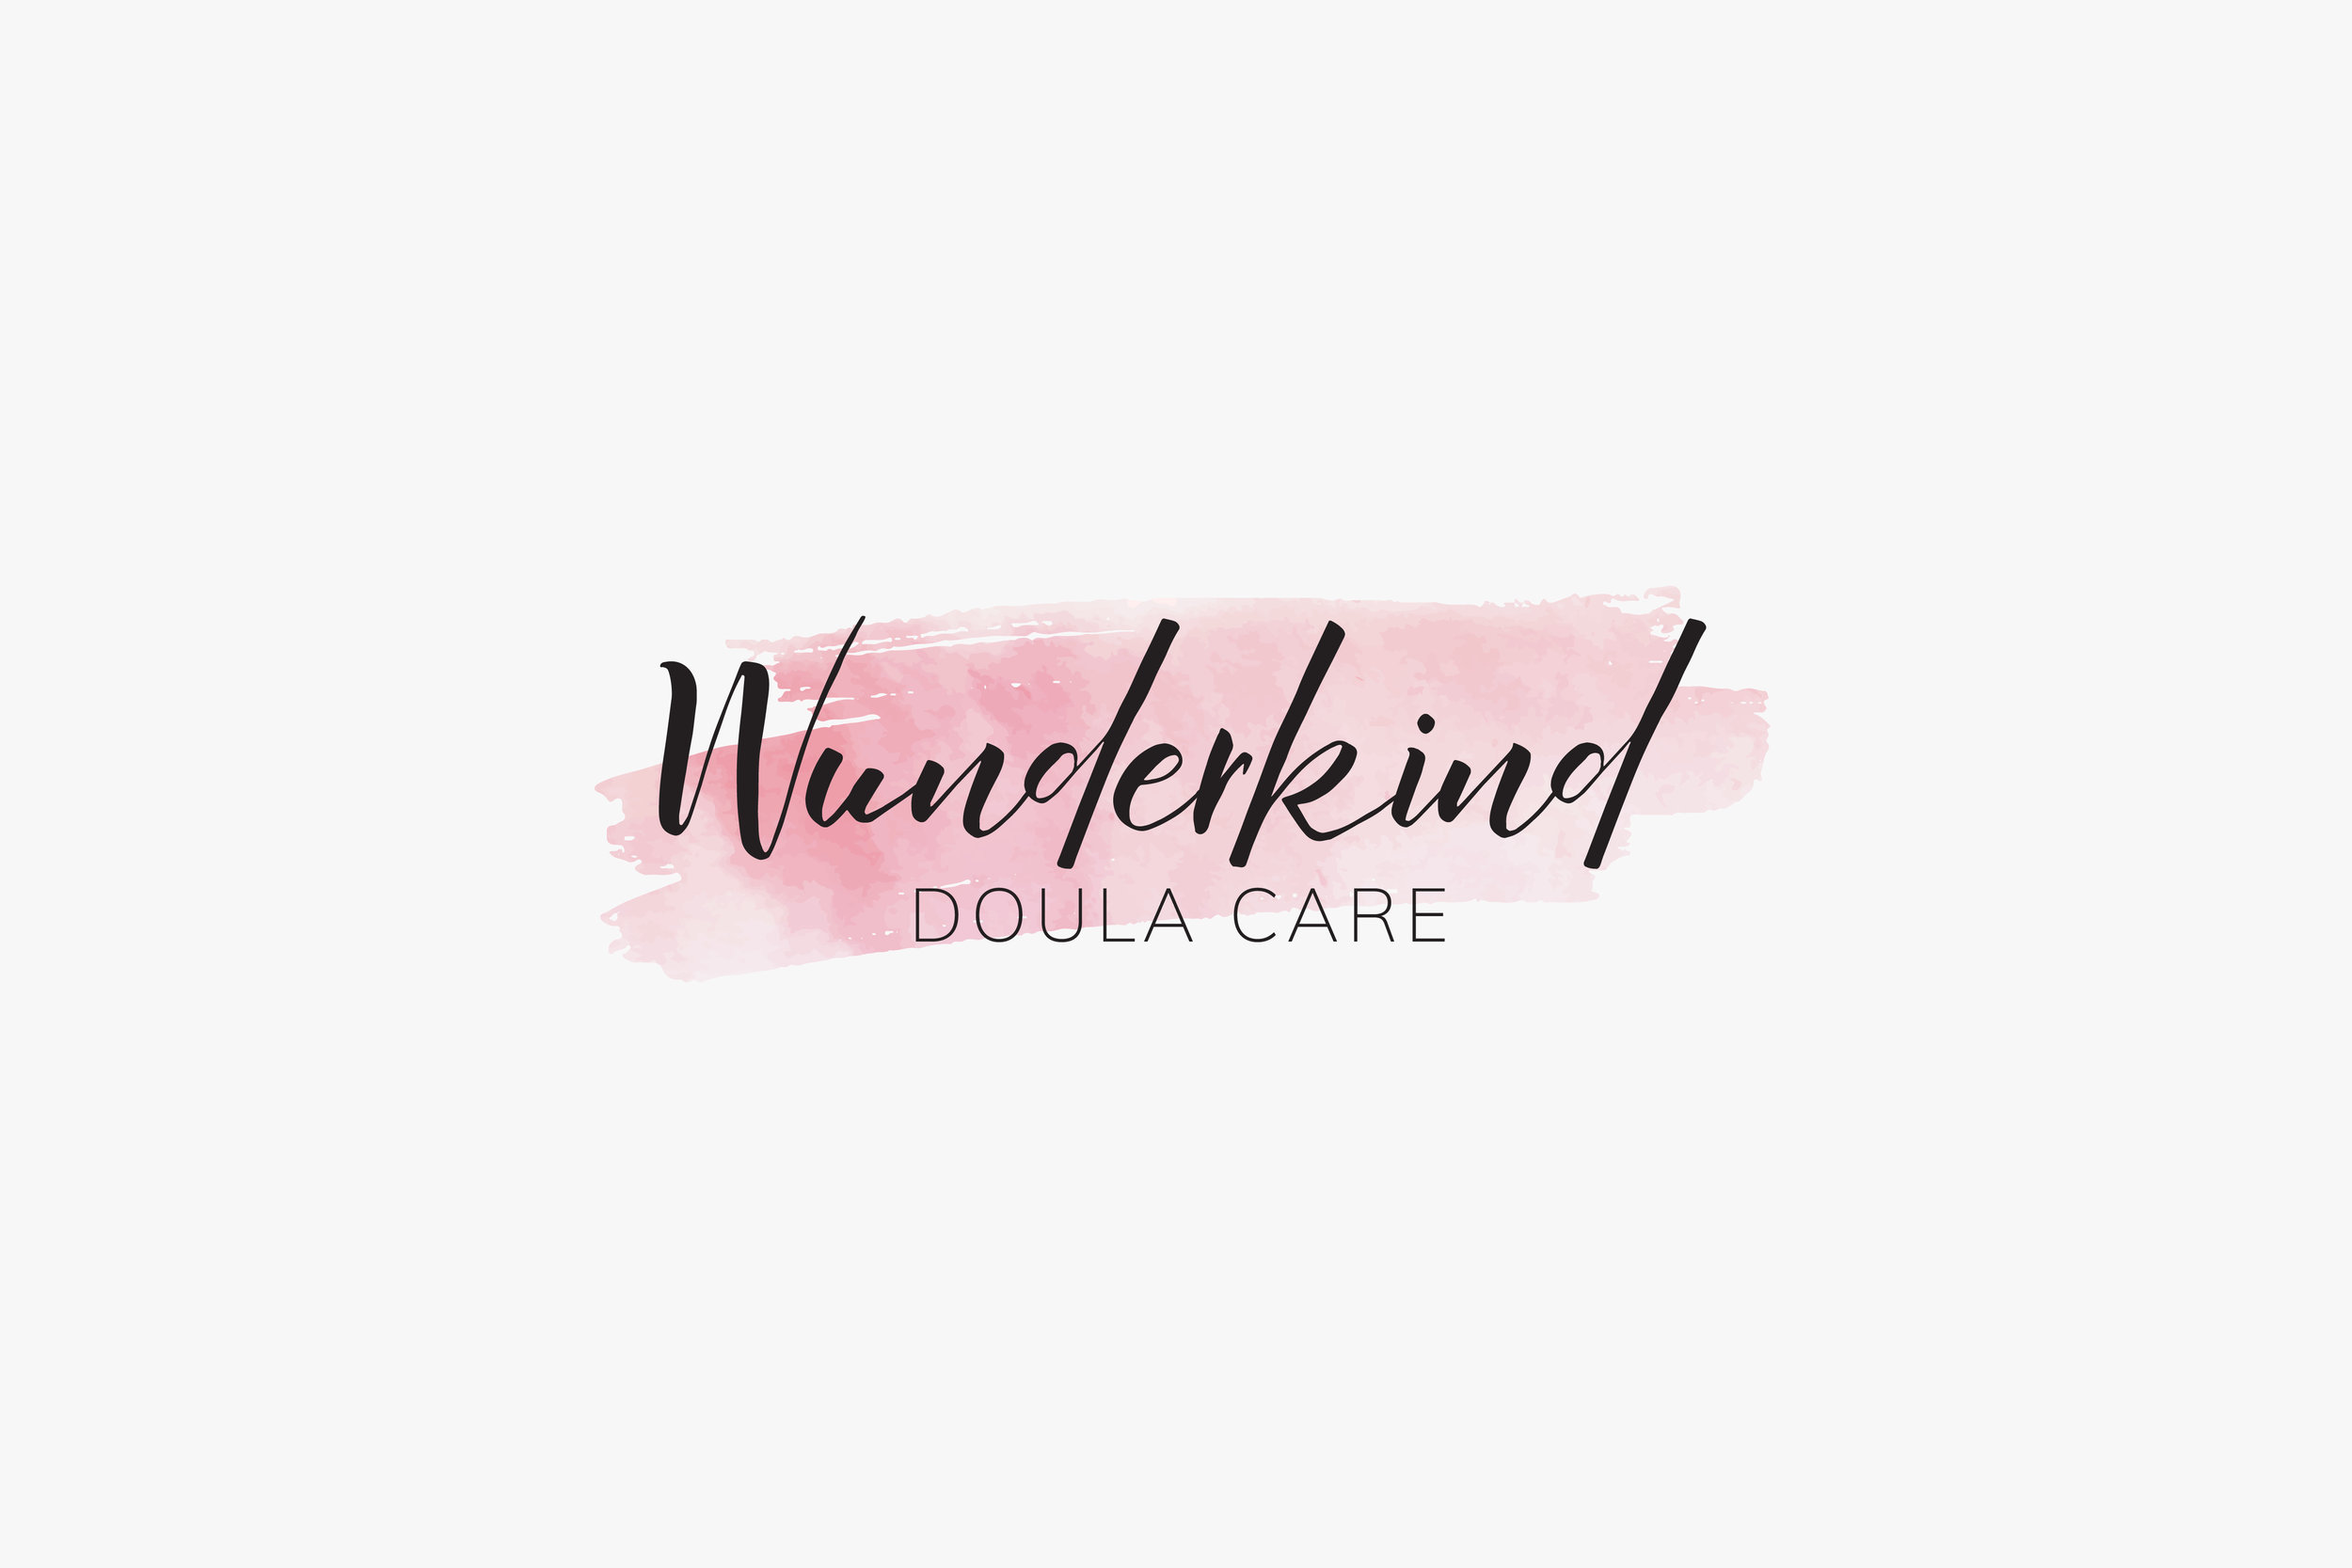 Branding & Website: Wunderkind Doula care